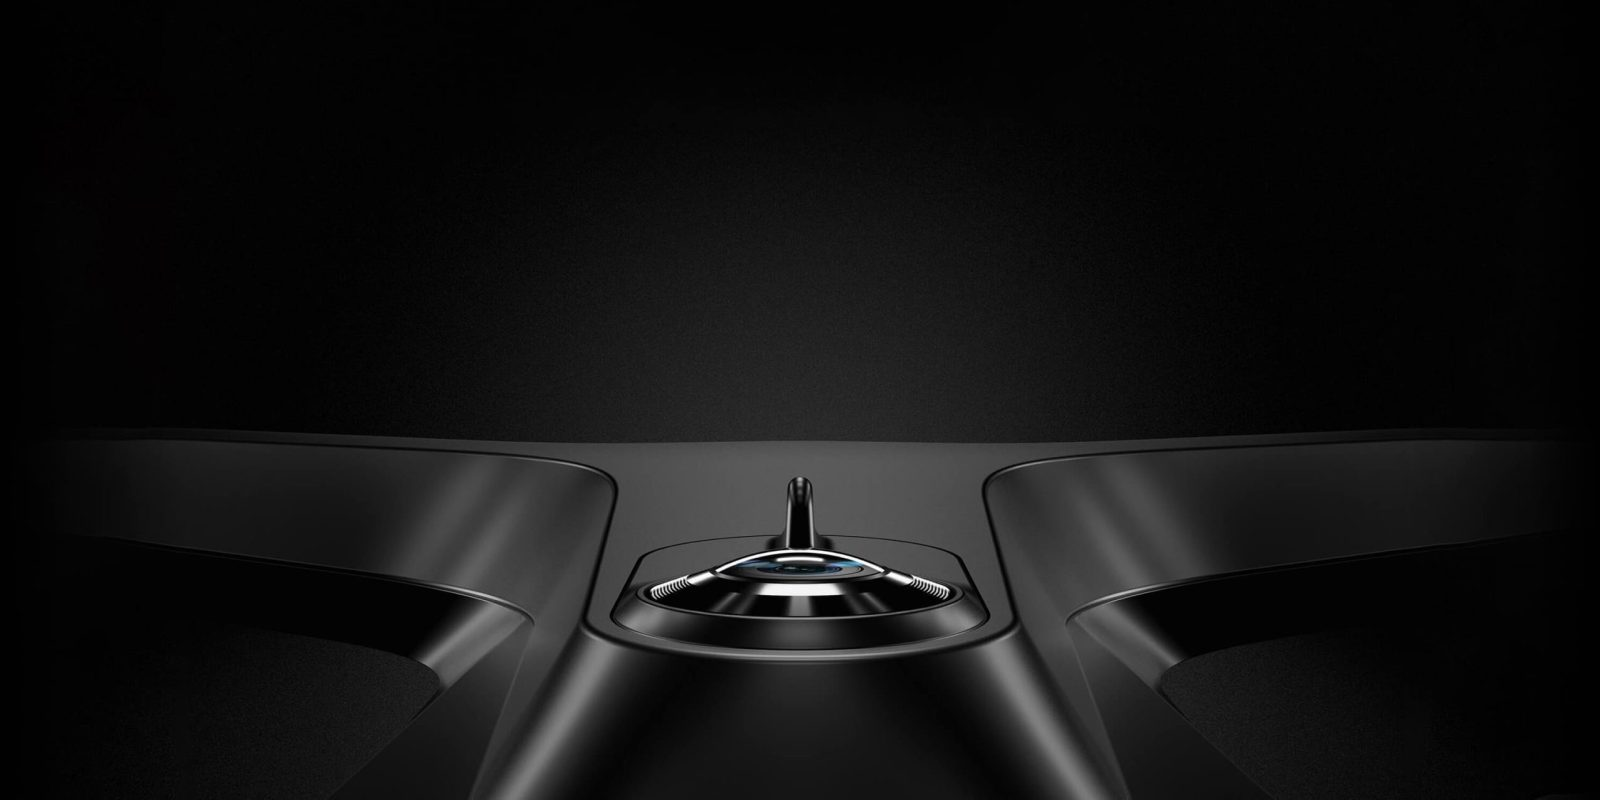 Skydio teases R1 drone successor coming this fall, could it be a DJI